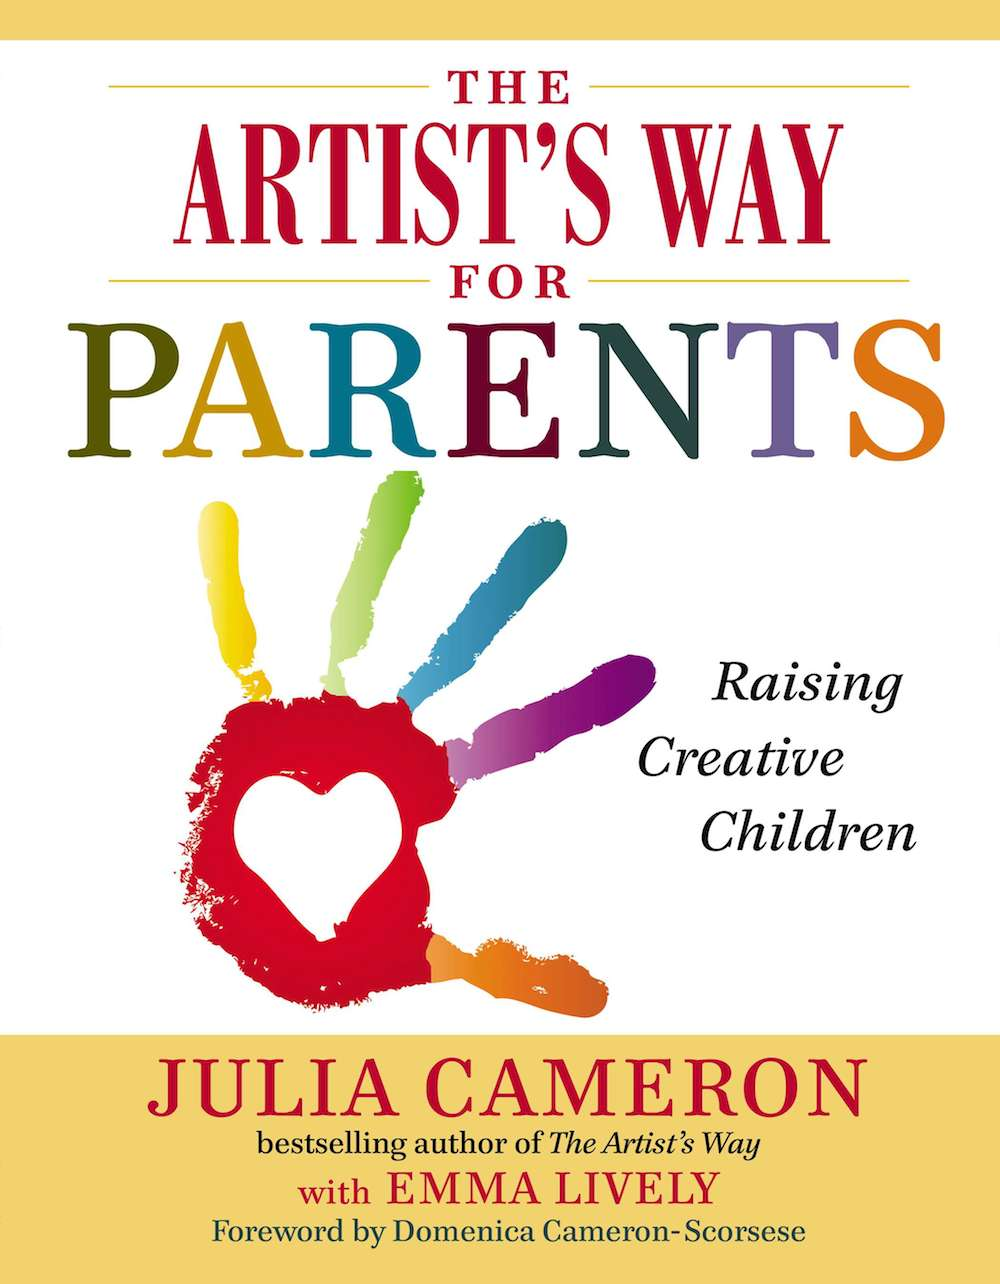 9780399168819_large_The_Artist's_Way_for_Parents.jpg